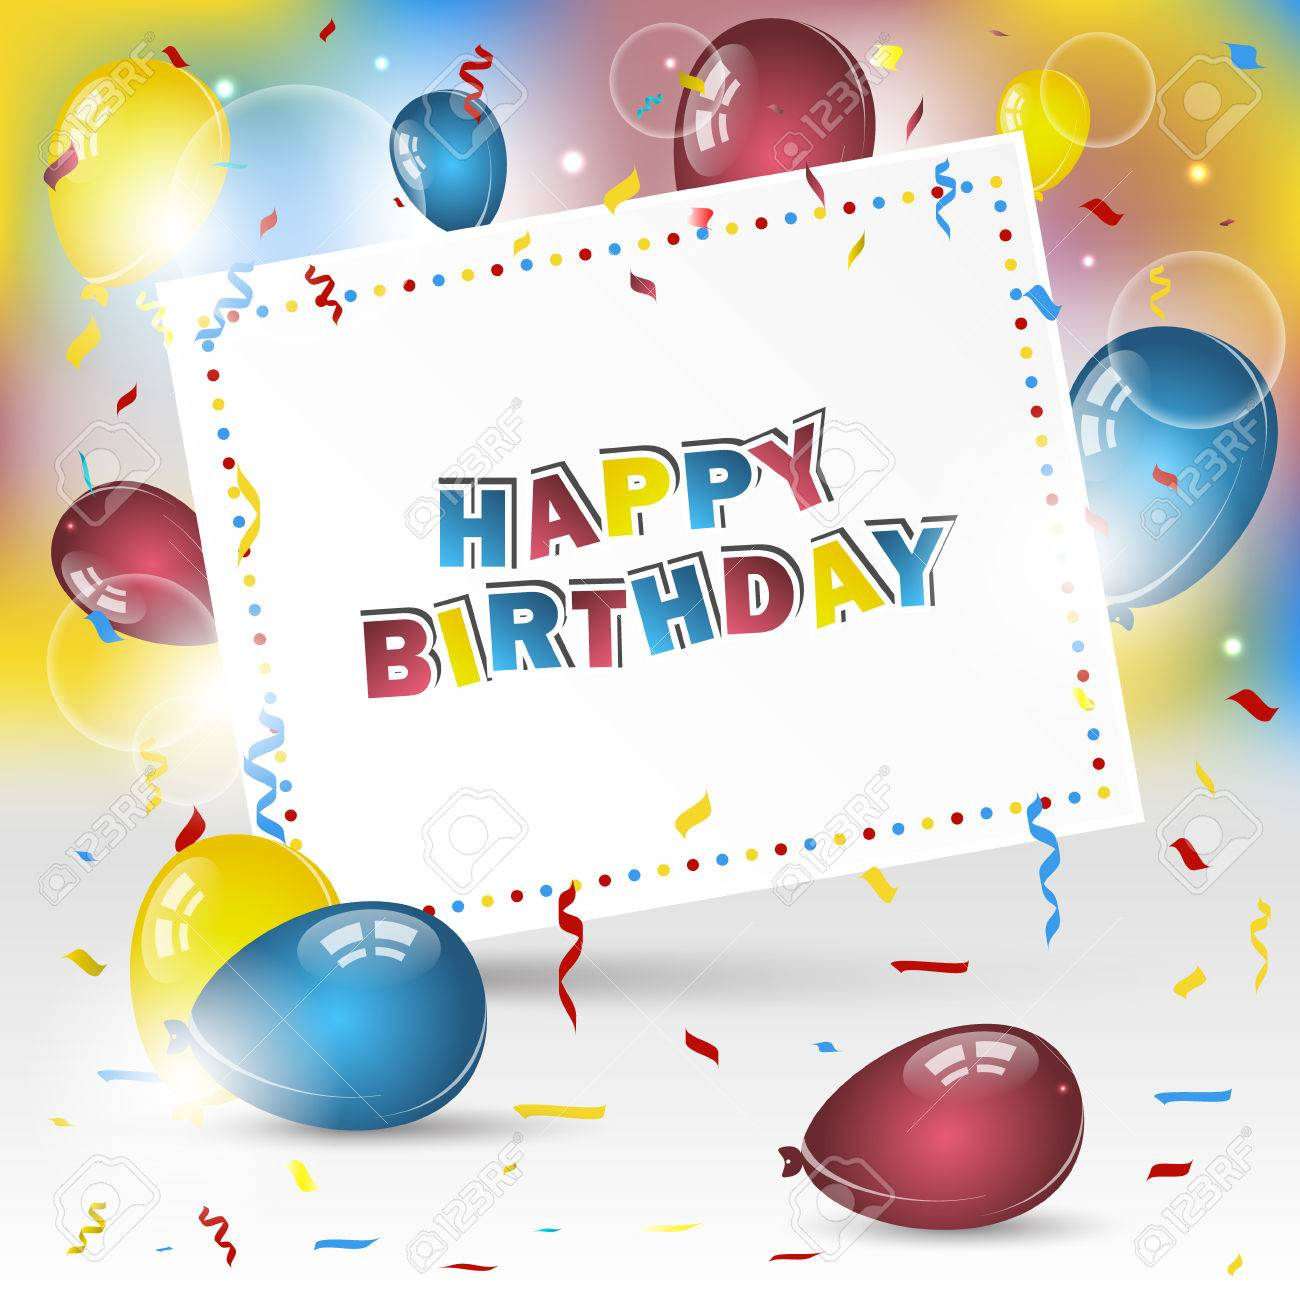 Happy Birthday Vector Background With Colorful Confetti And Balloons Design For Your Greeting Card Stock